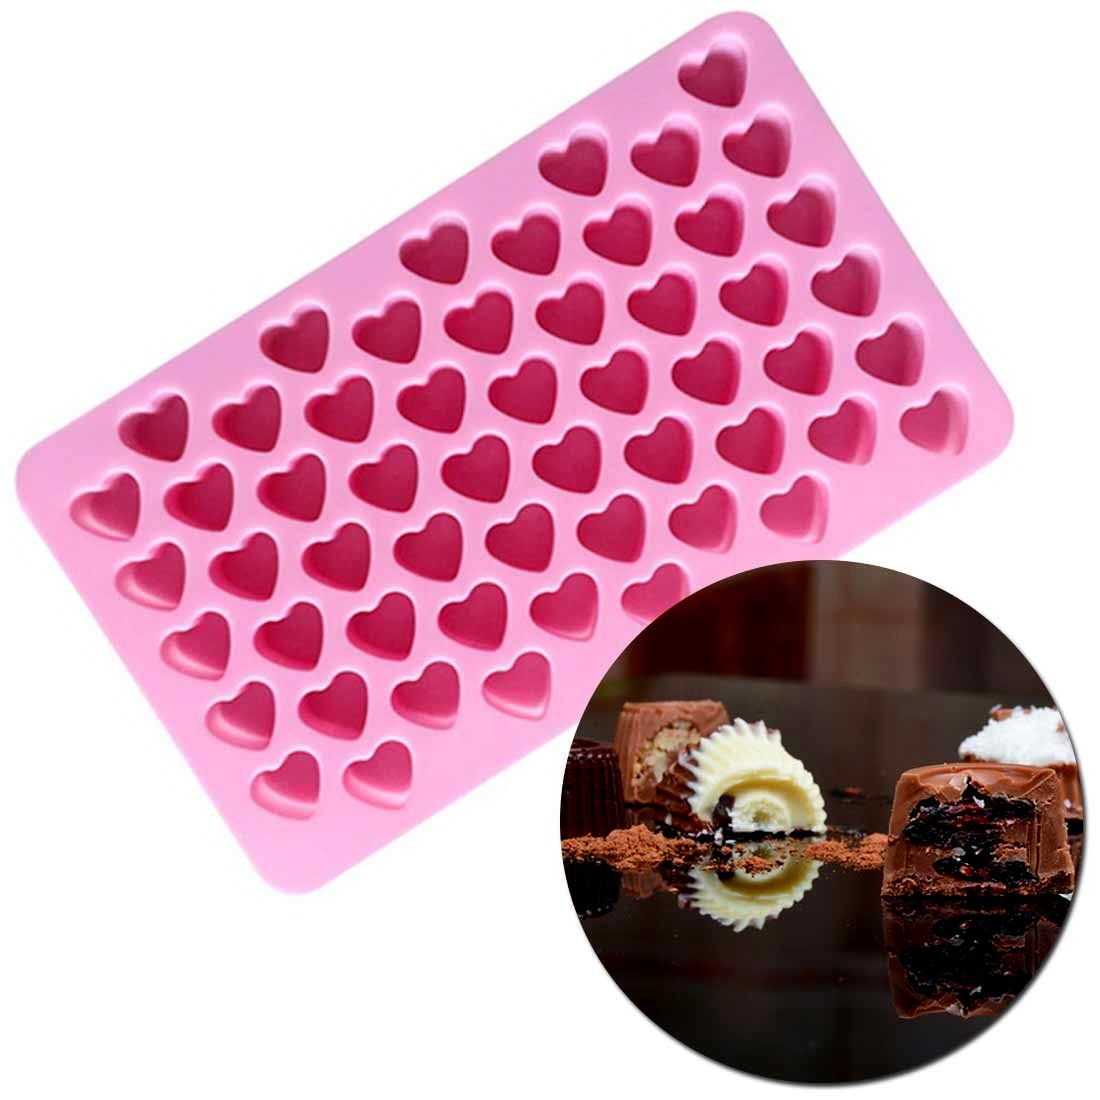 3D Cake Moulds Heart Shape Bakeware Candy Gummy TrayEasy Demoulding Silicone Chocolate Molds for Baking Letters Flower